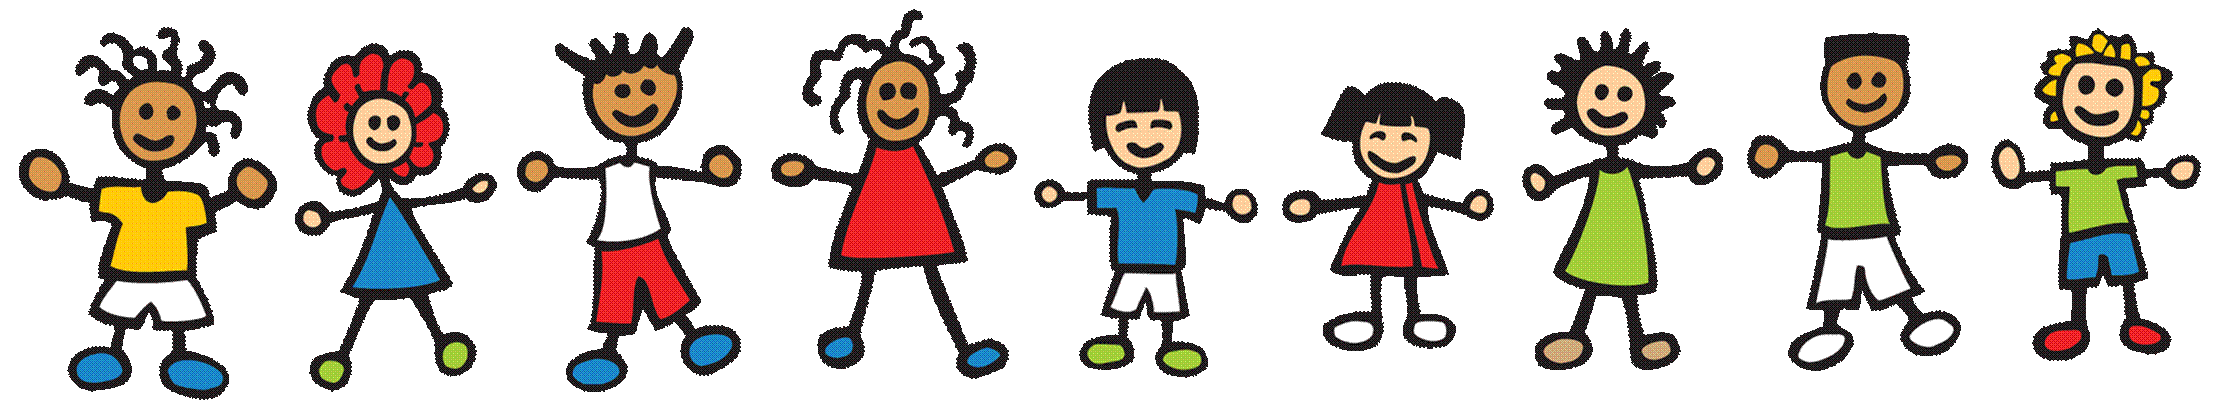 kids-playing-free-preschool-clip-art-pictures-clipartix